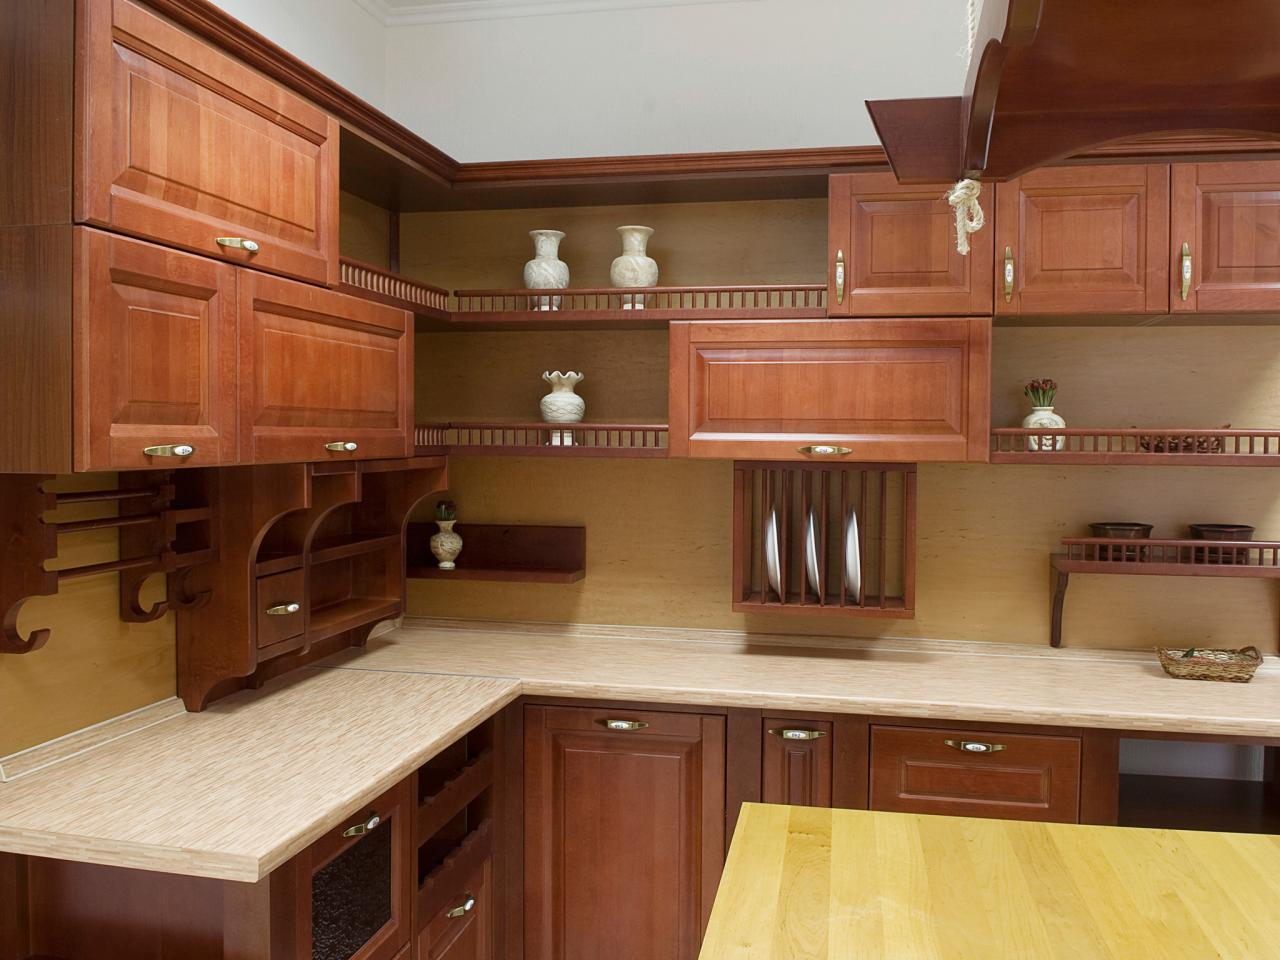 Open kitchen cabinets pictures ideas tips from hgtv hgtv for Cabinet and countertop design